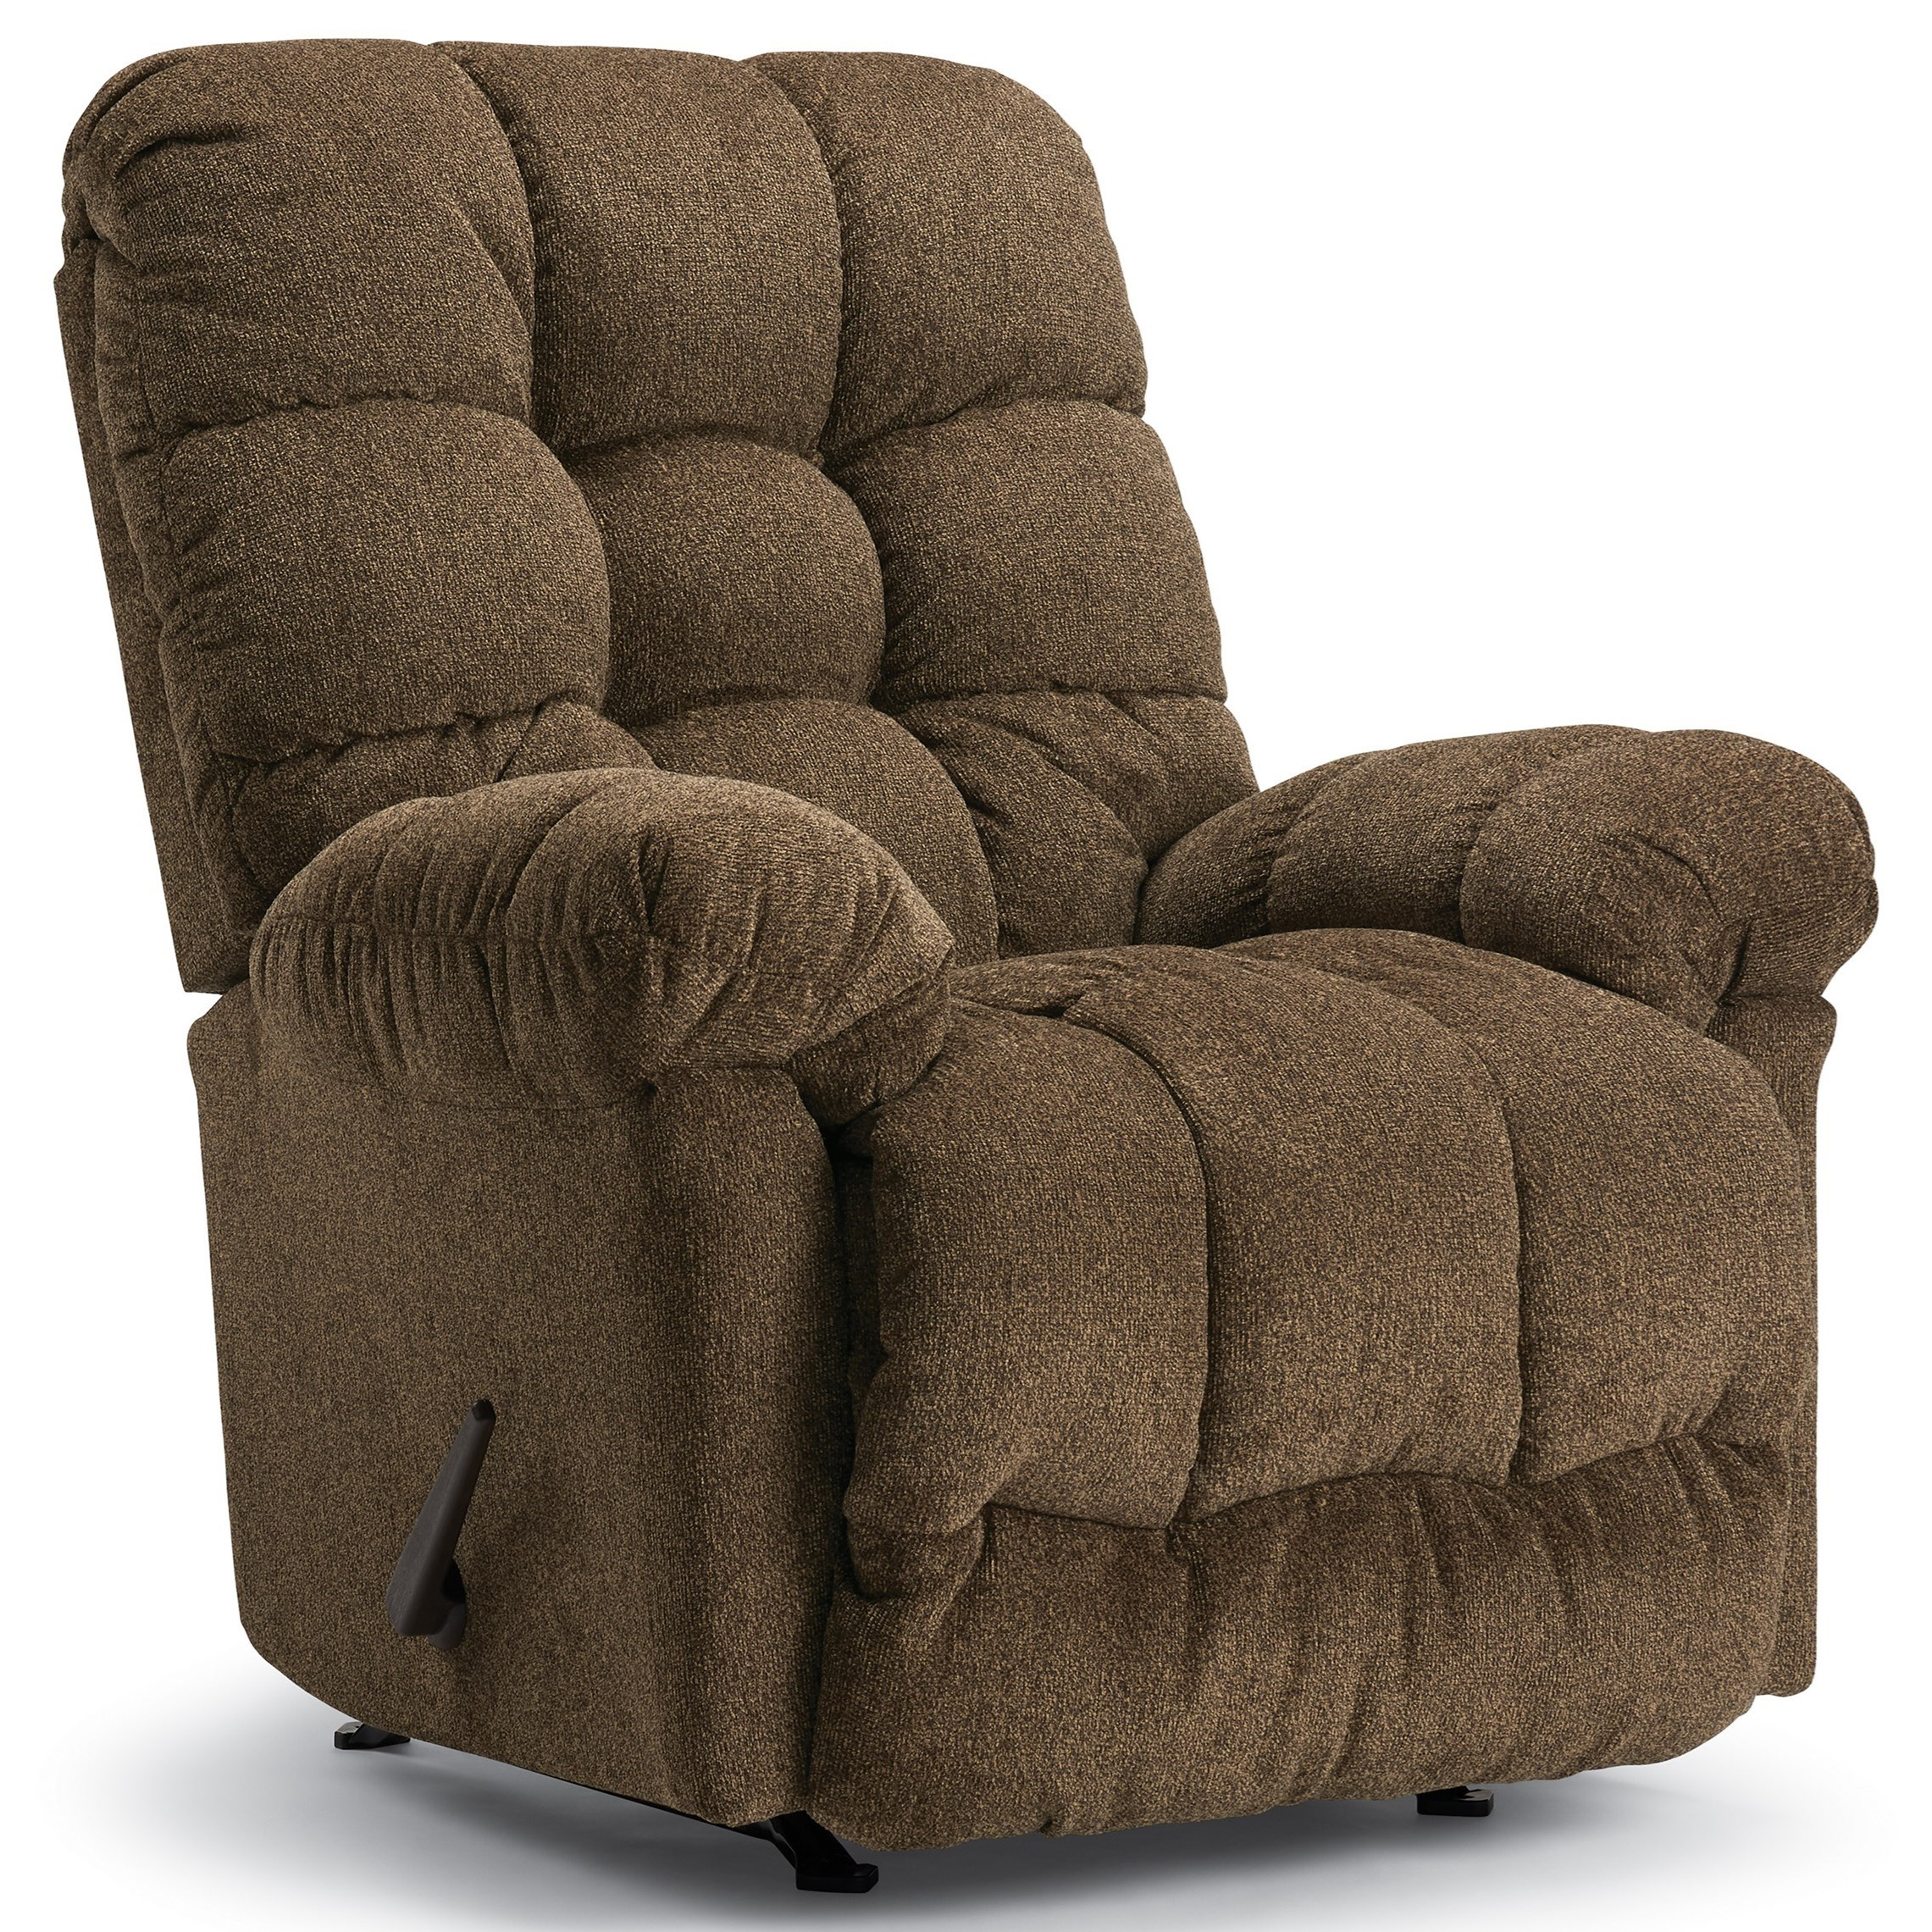 Medium Recliners Brosmer Rocker Recliner by Best Home Furnishings at Powell's Furniture and Mattress